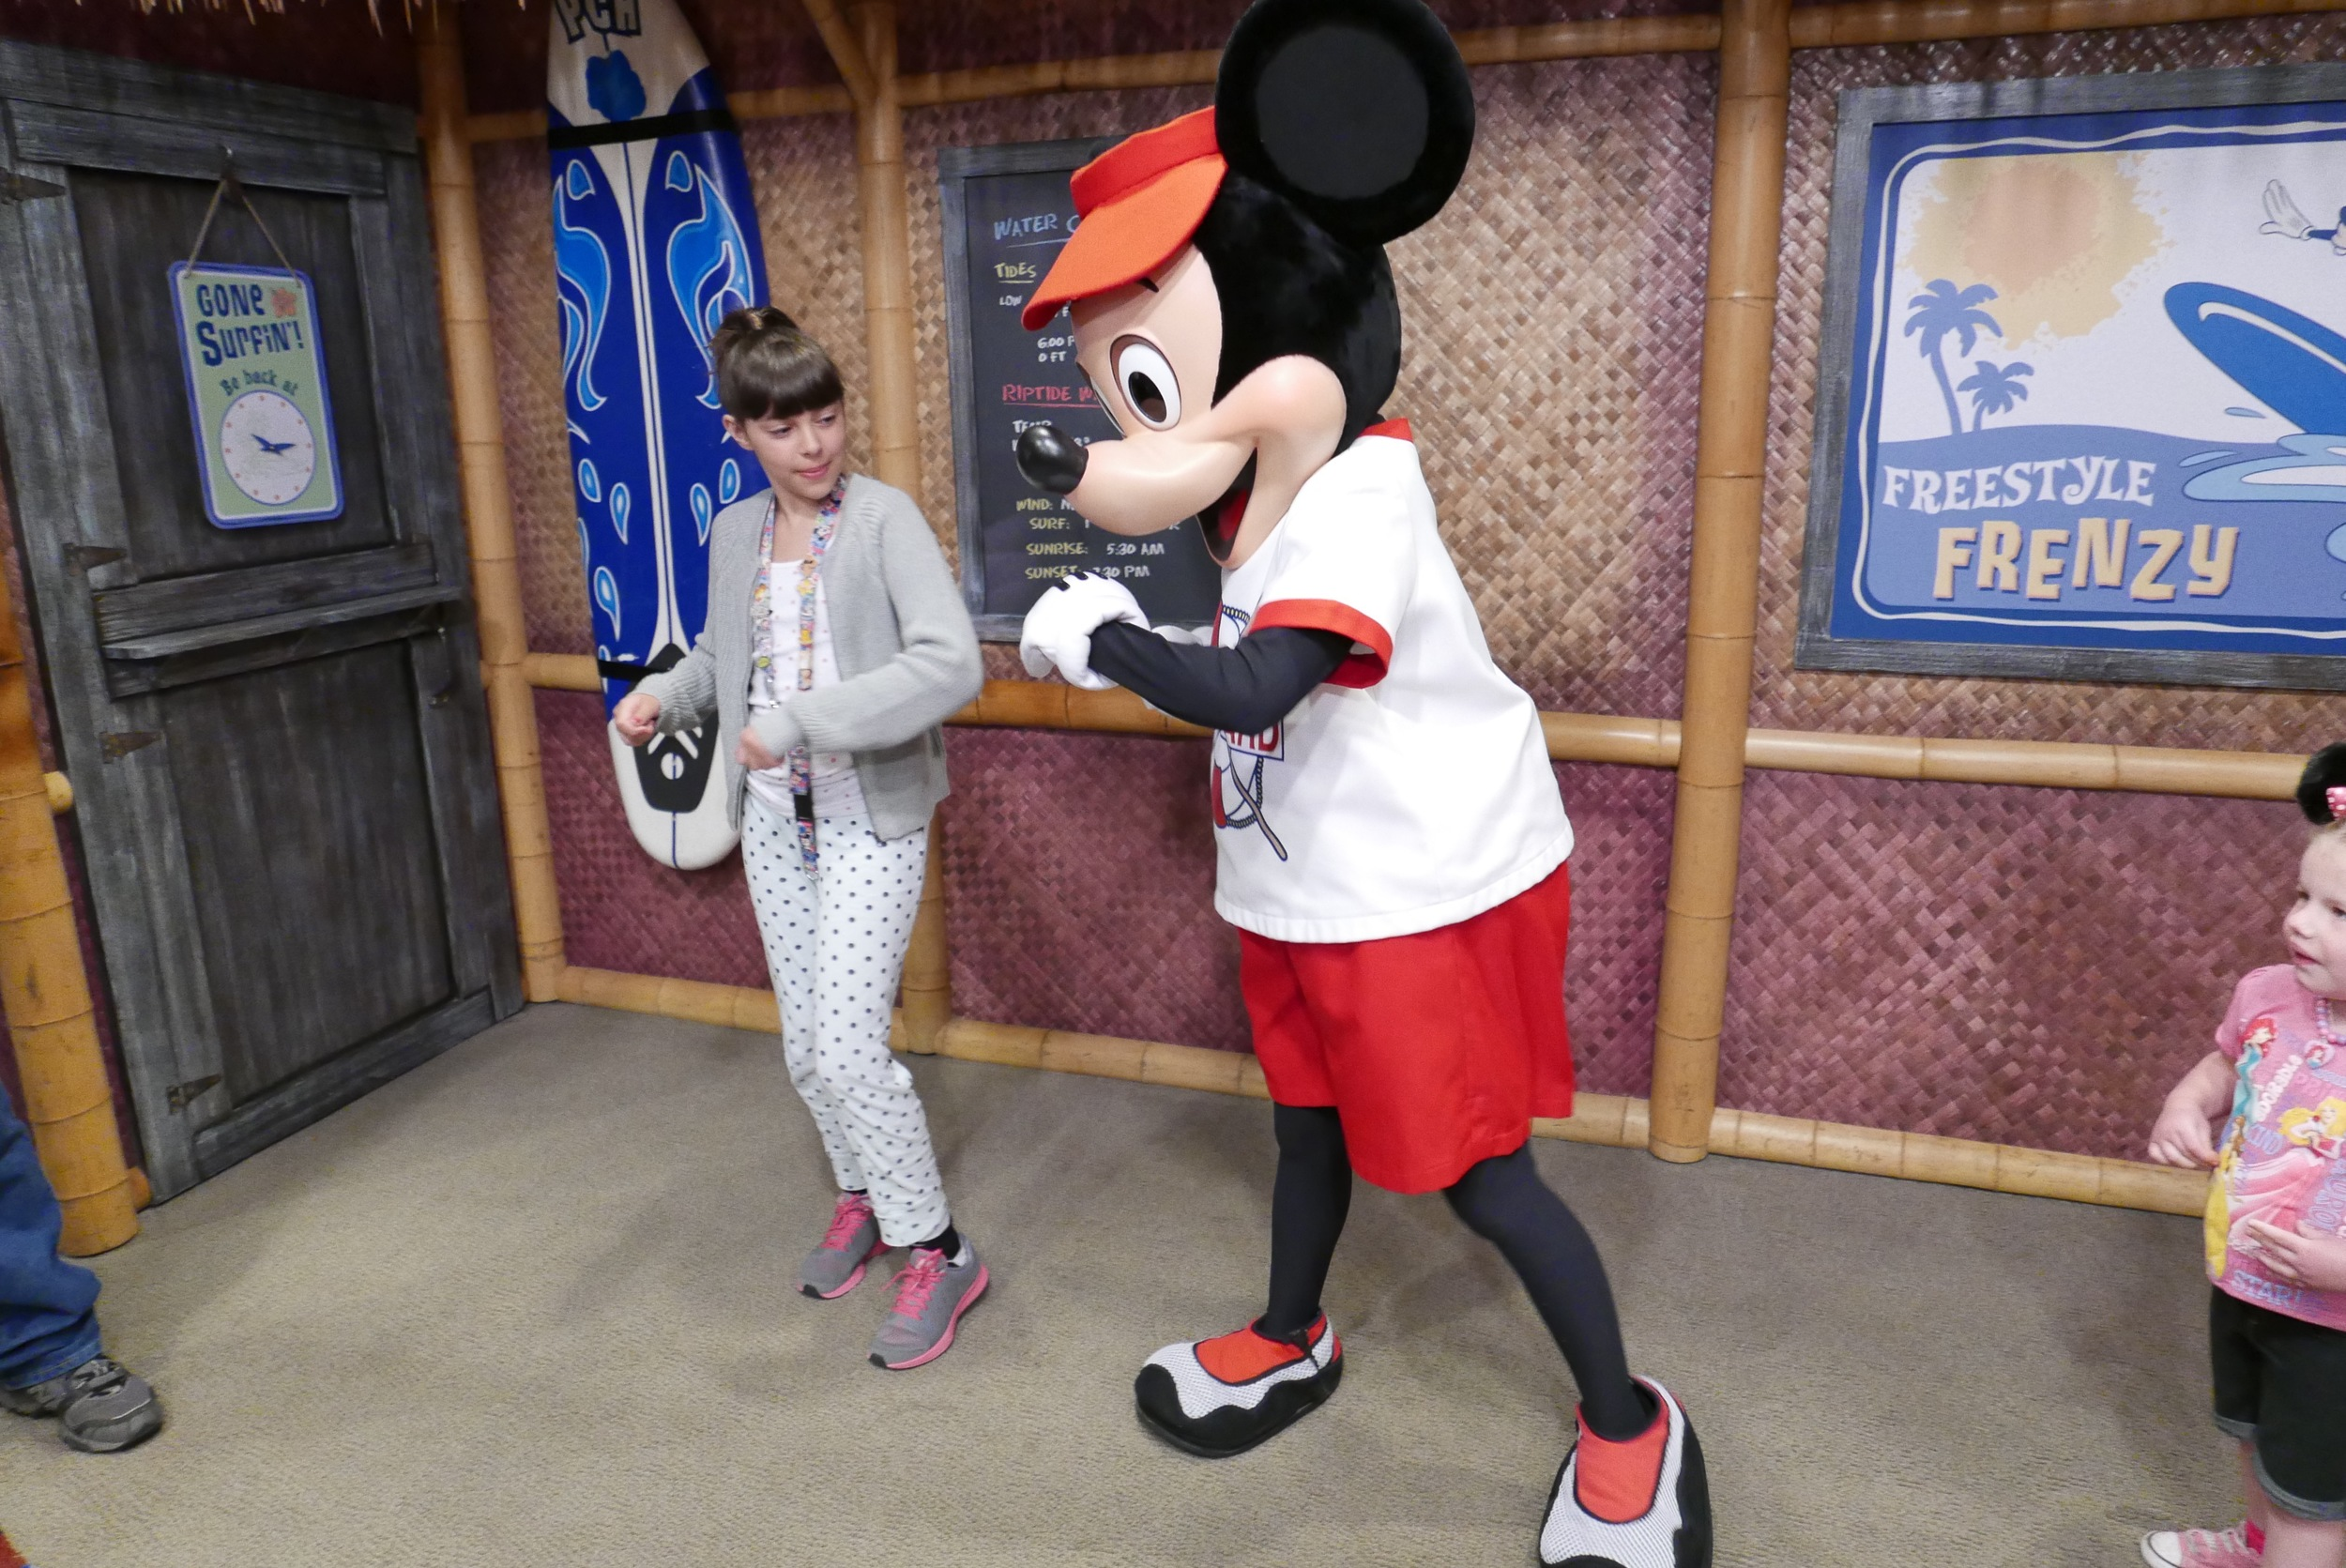 getting my dance on with Mickey